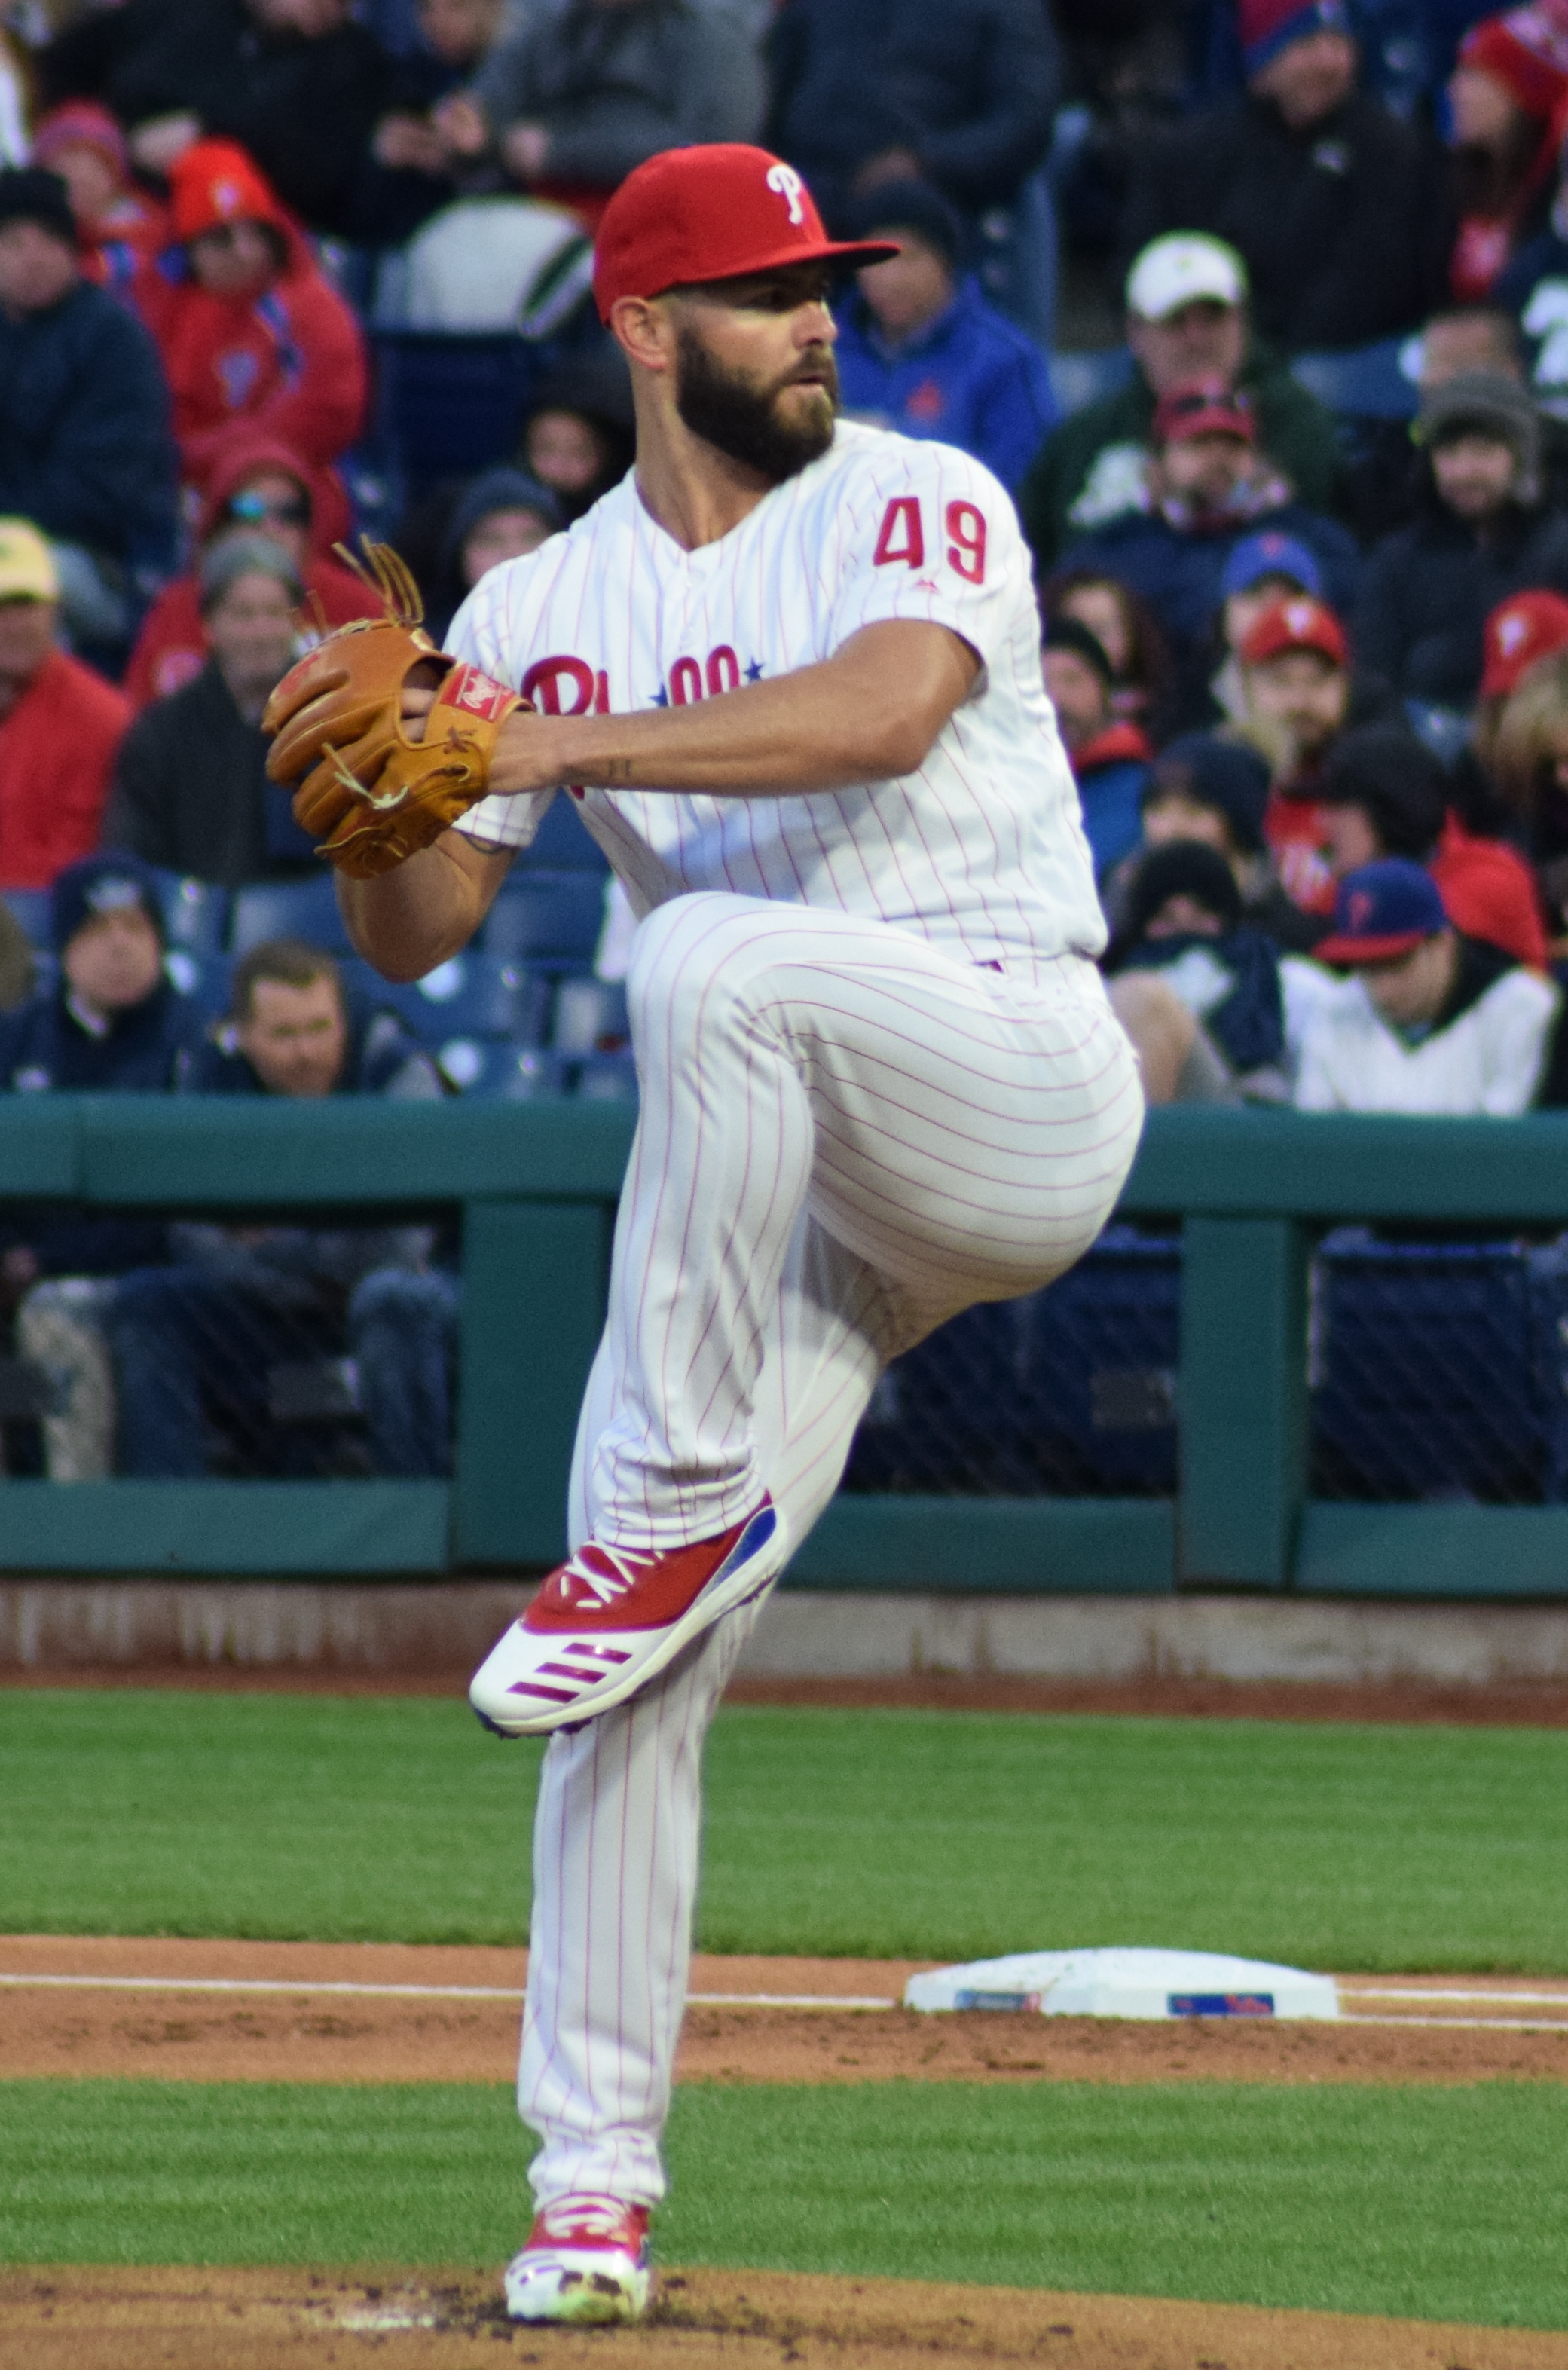 The 34-year old son of father (?) and mother(?) Jake Arrieta in 2021 photo. Jake Arrieta earned a 10 million dollar salary - leaving the net worth at 20 million in 2021